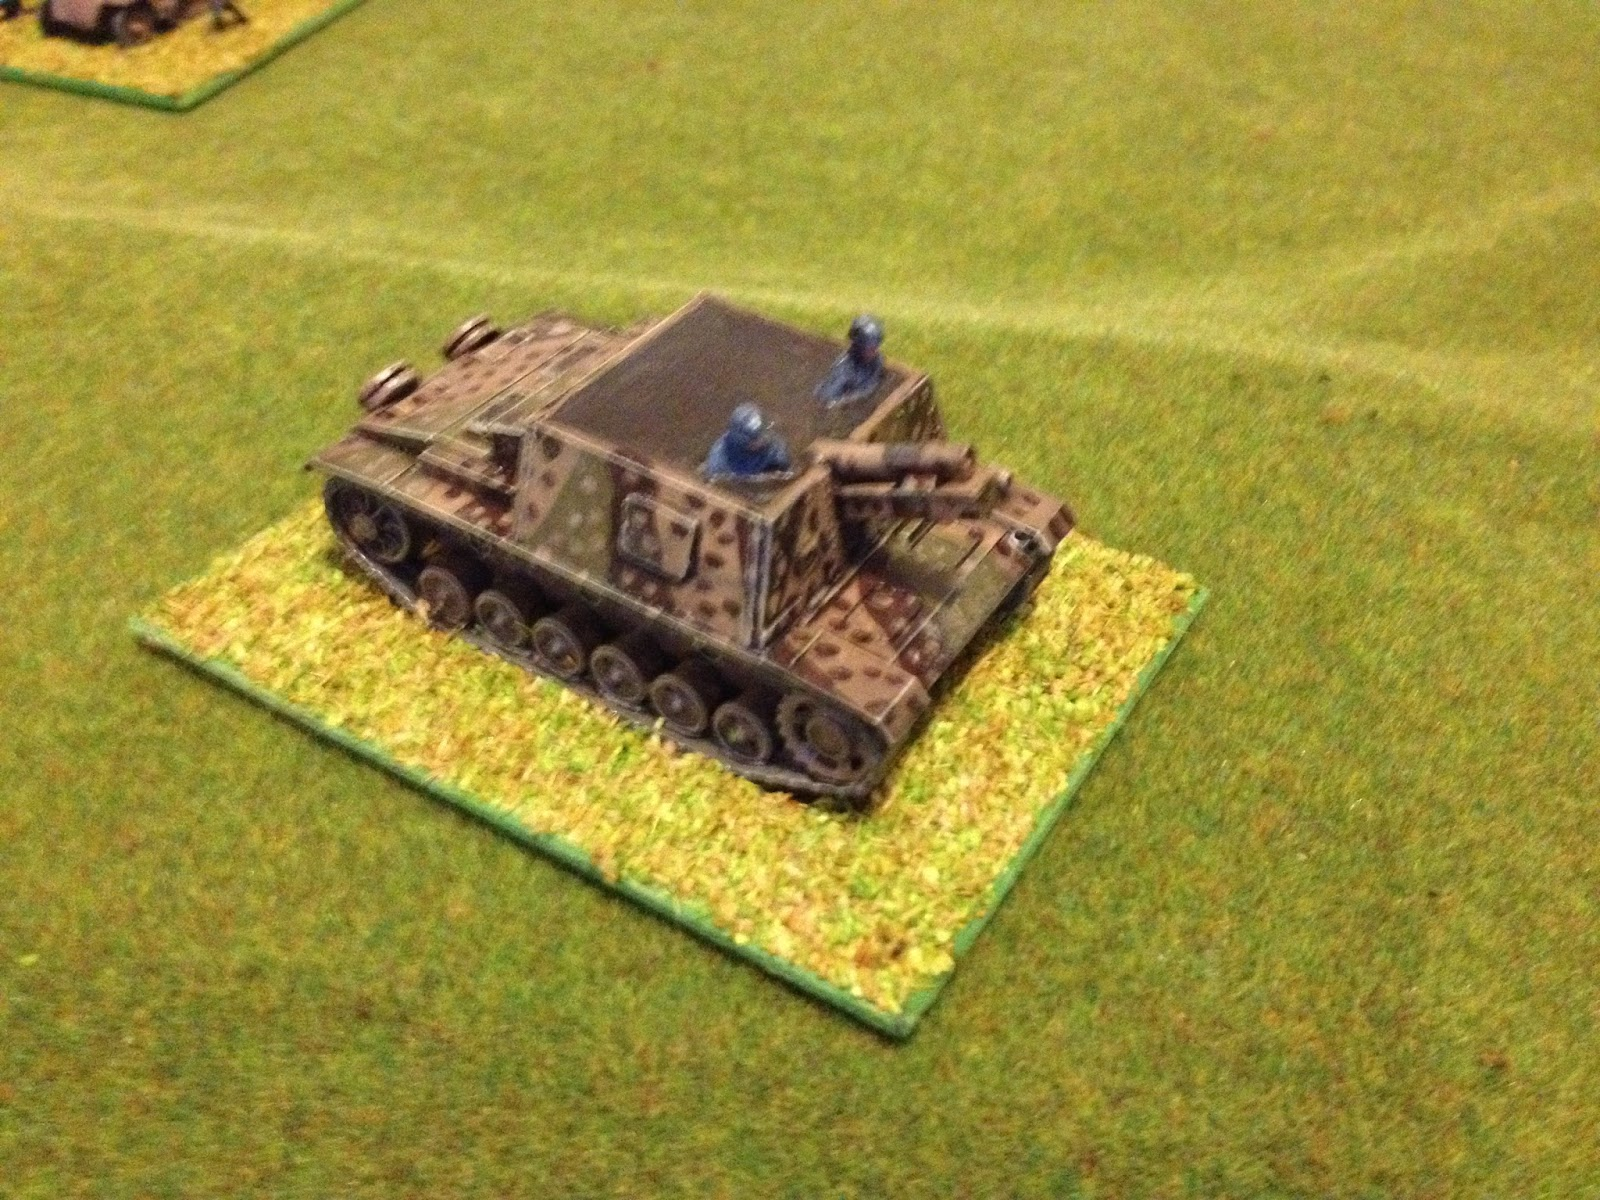 Gaming Stuh Grid Based Wargaming - But Not Always: Ww2 Project Continues